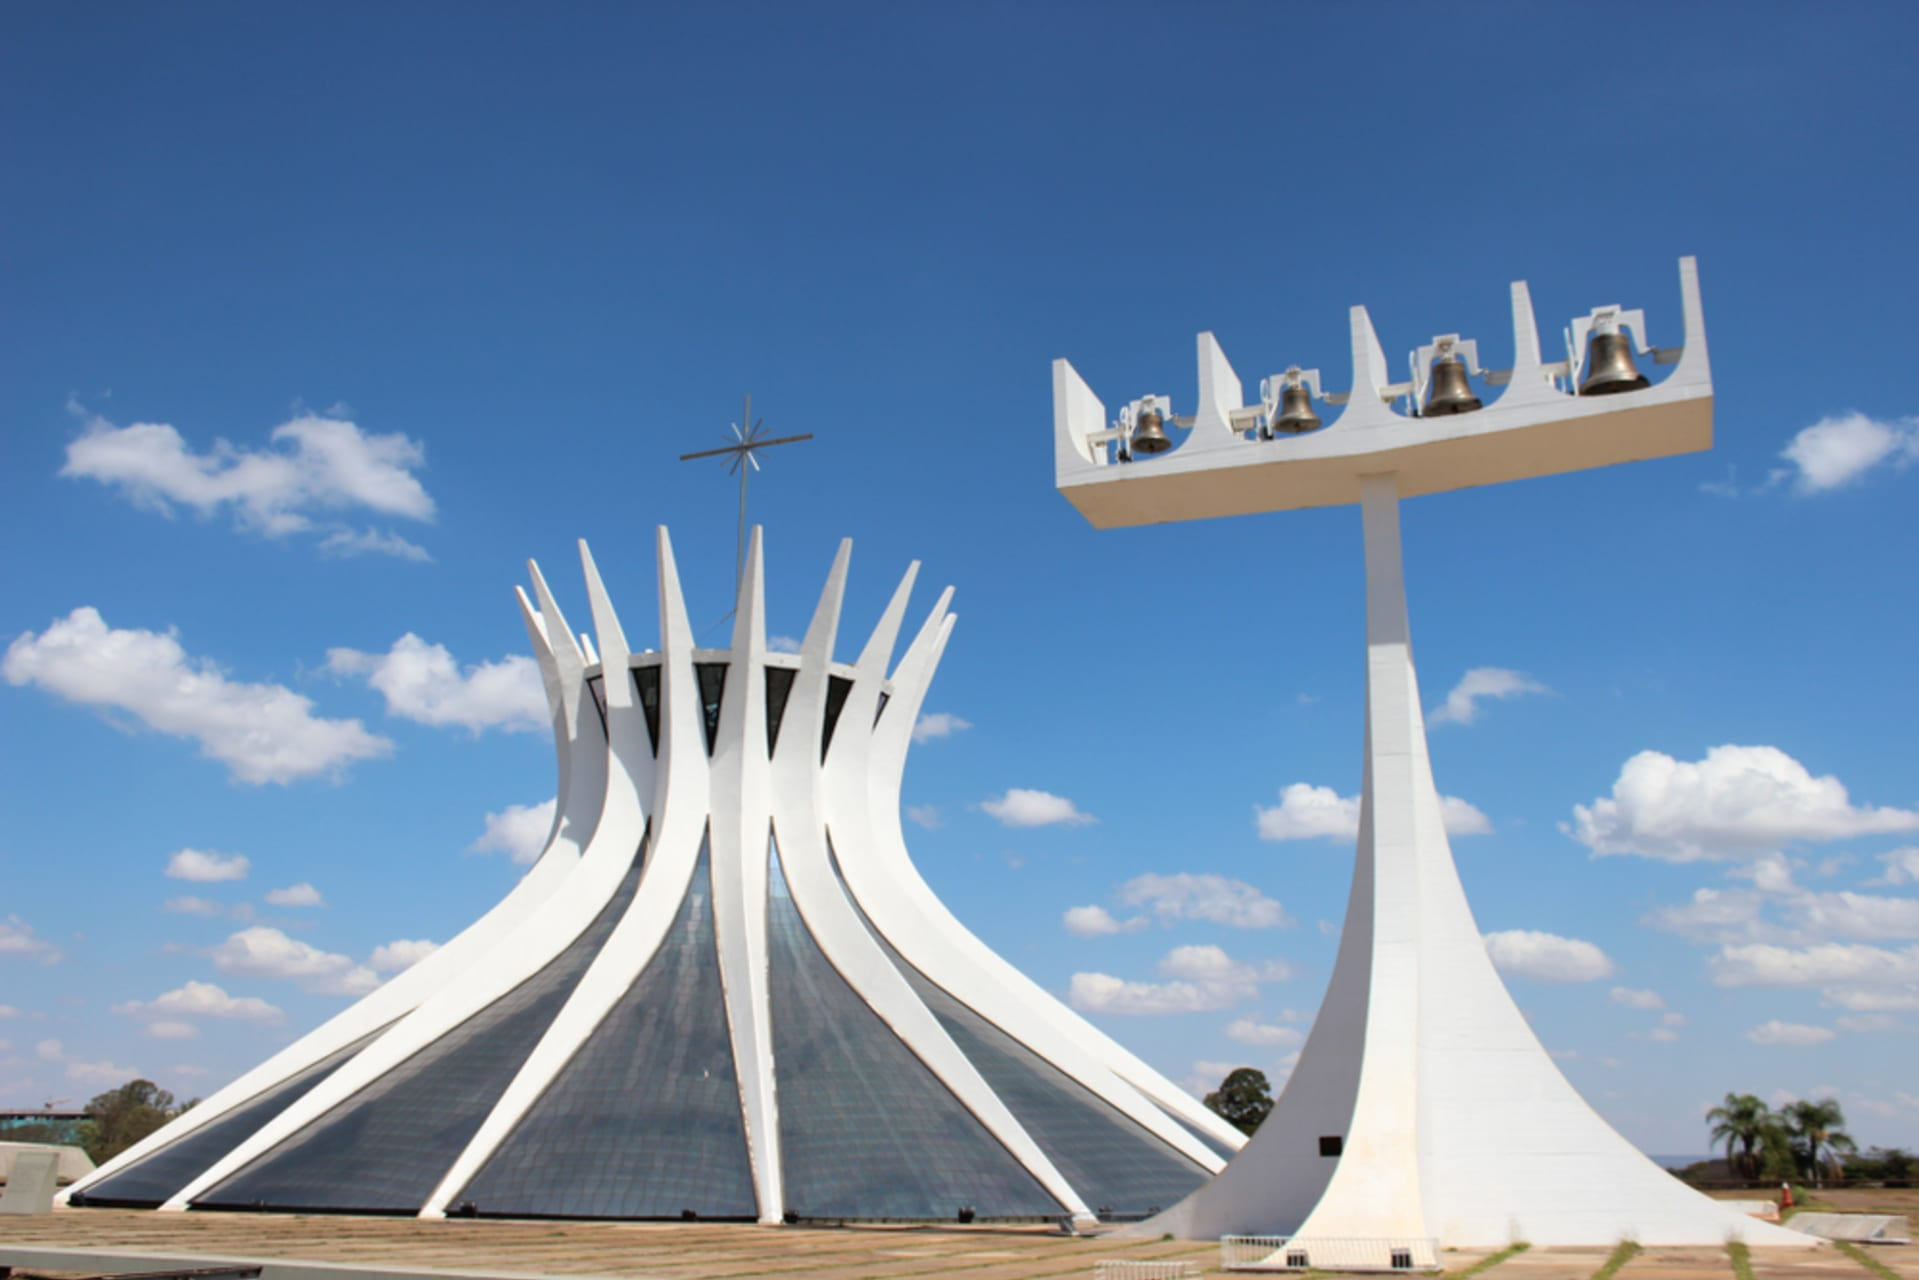 Brasilia - The modern architecture of the capital of Brazil